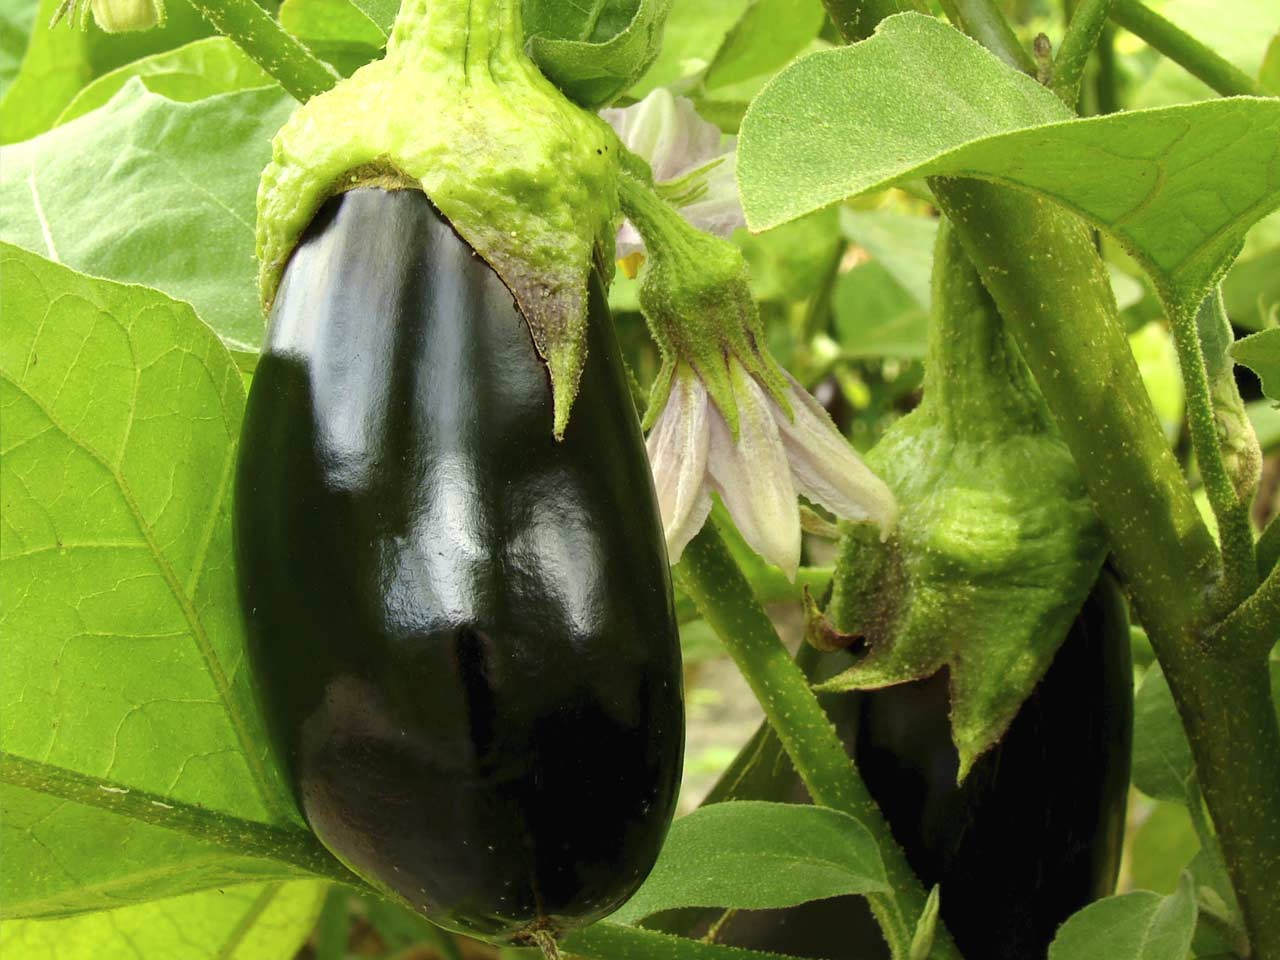 Eggplant in the greenhouse: growing and care 55